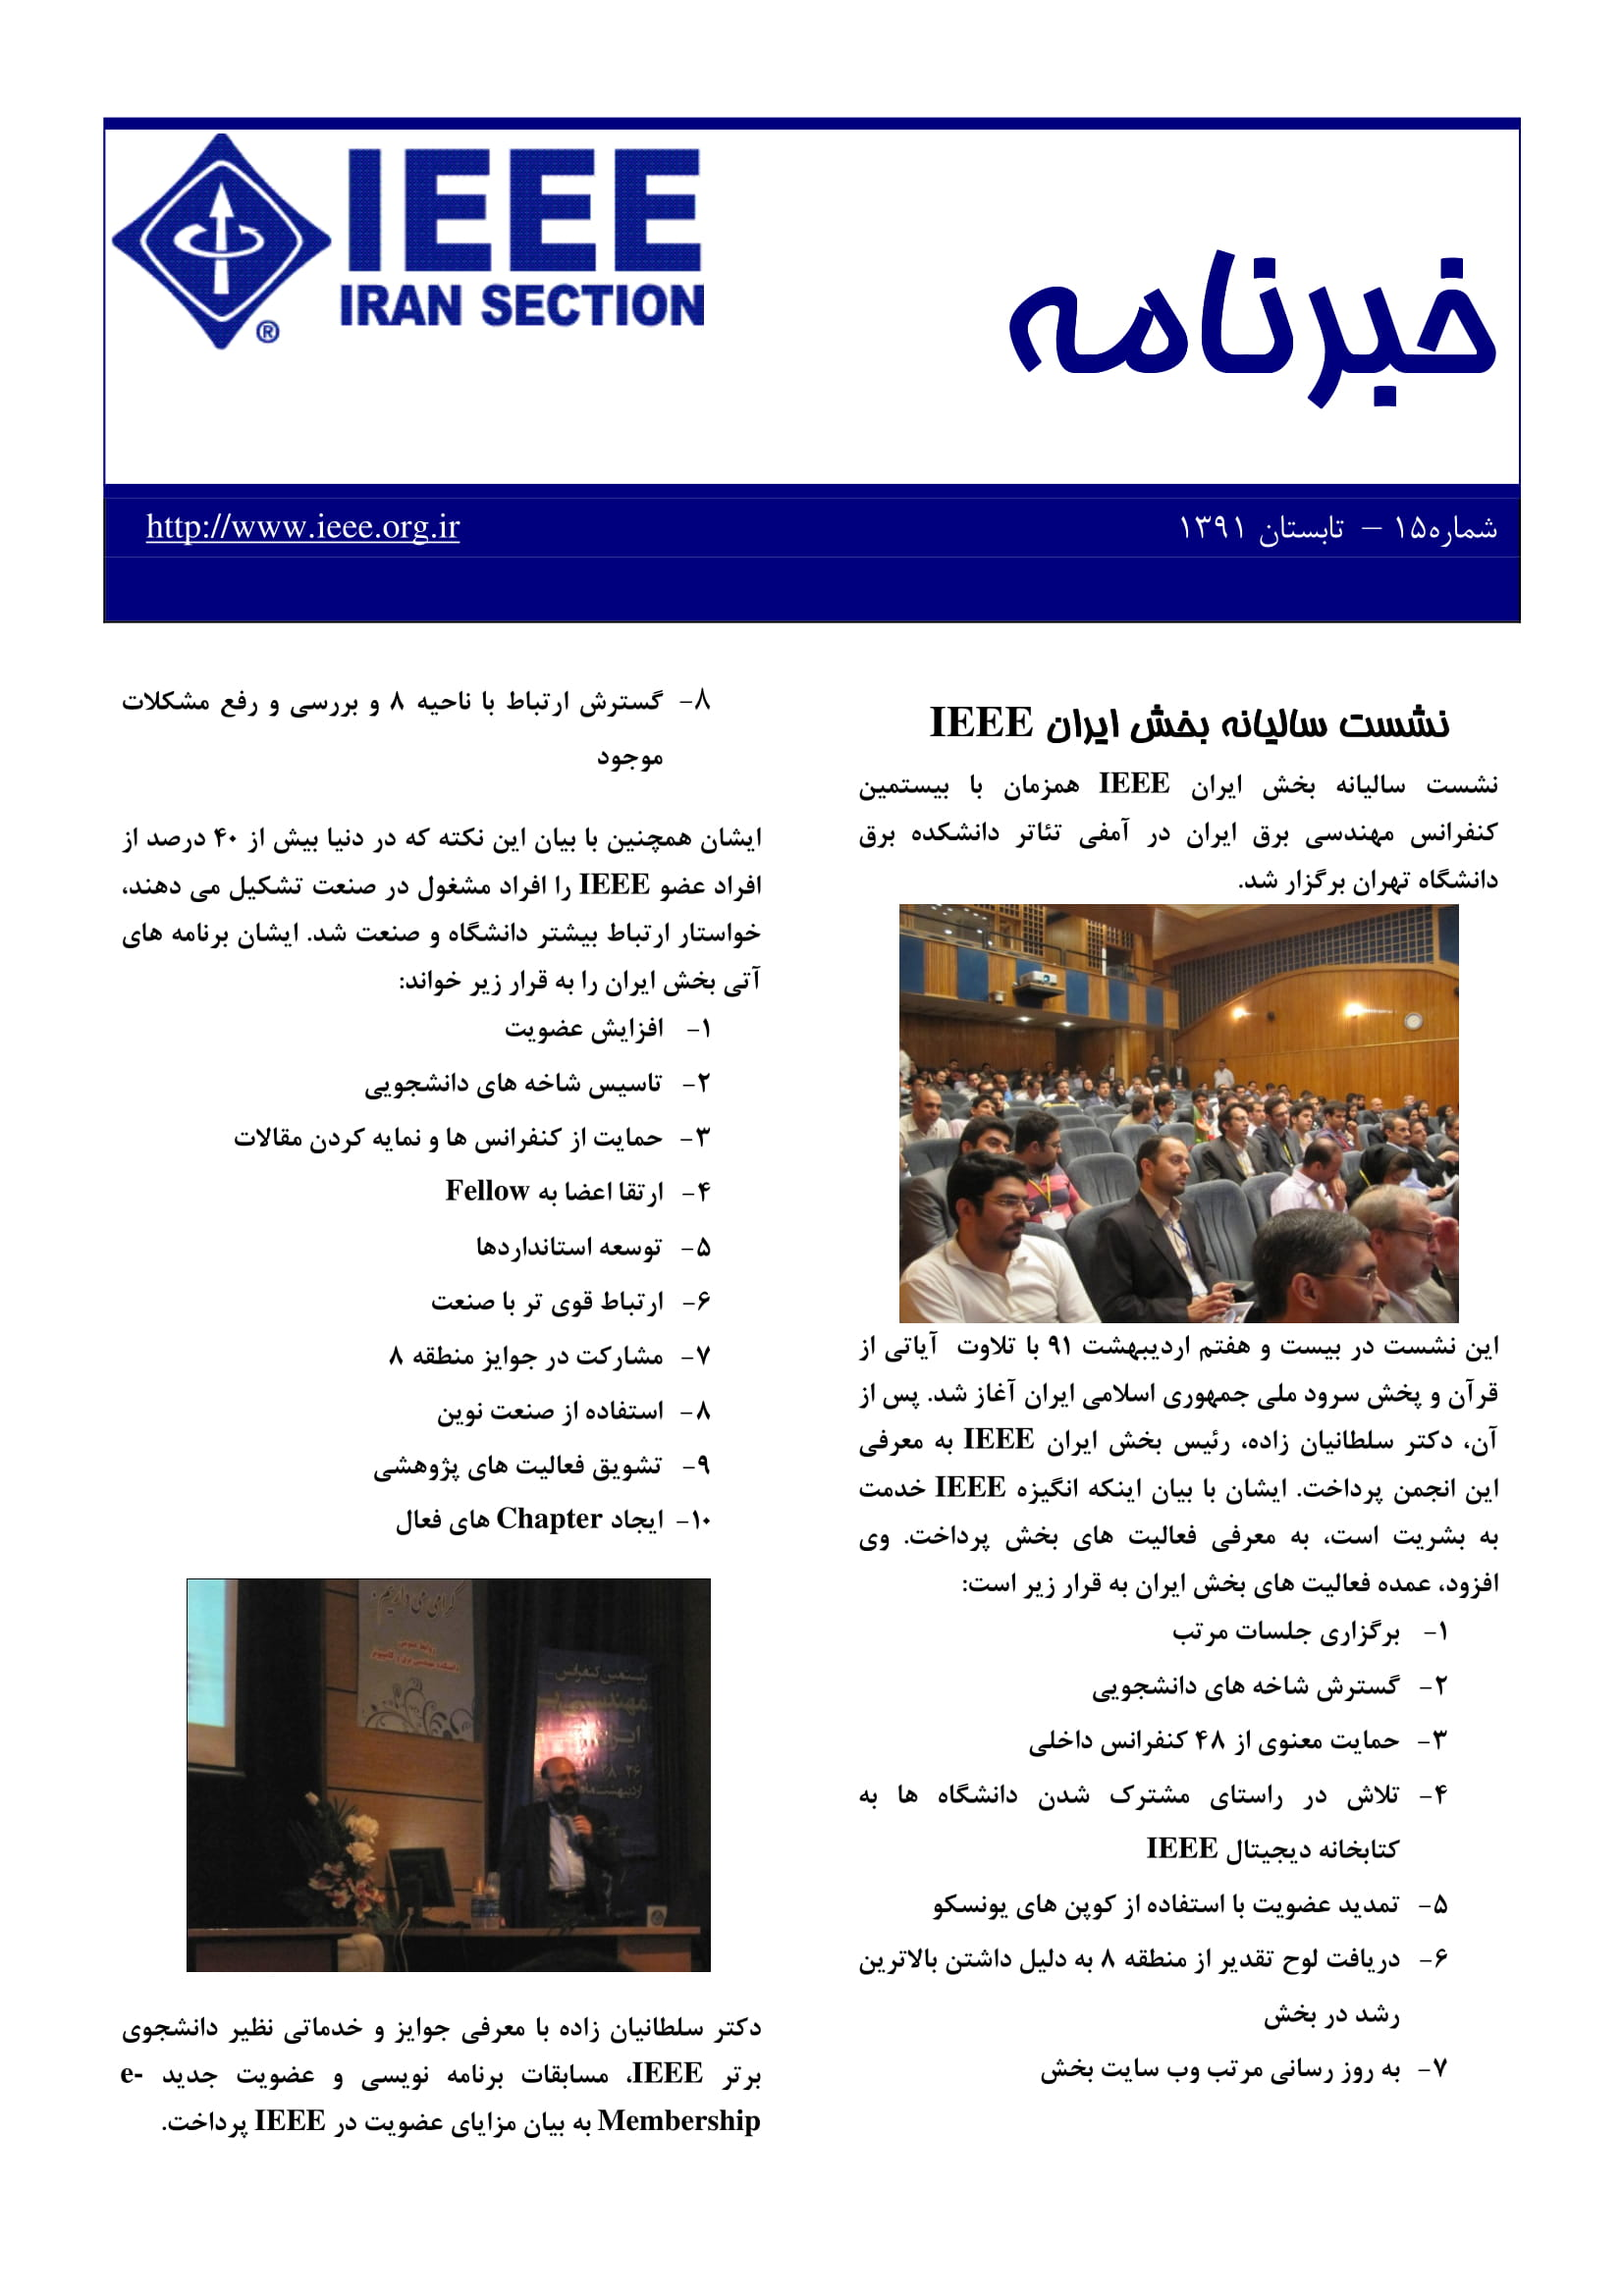 IEEE-Iran-Section_Newsletter_Summer_1391_No.15-1